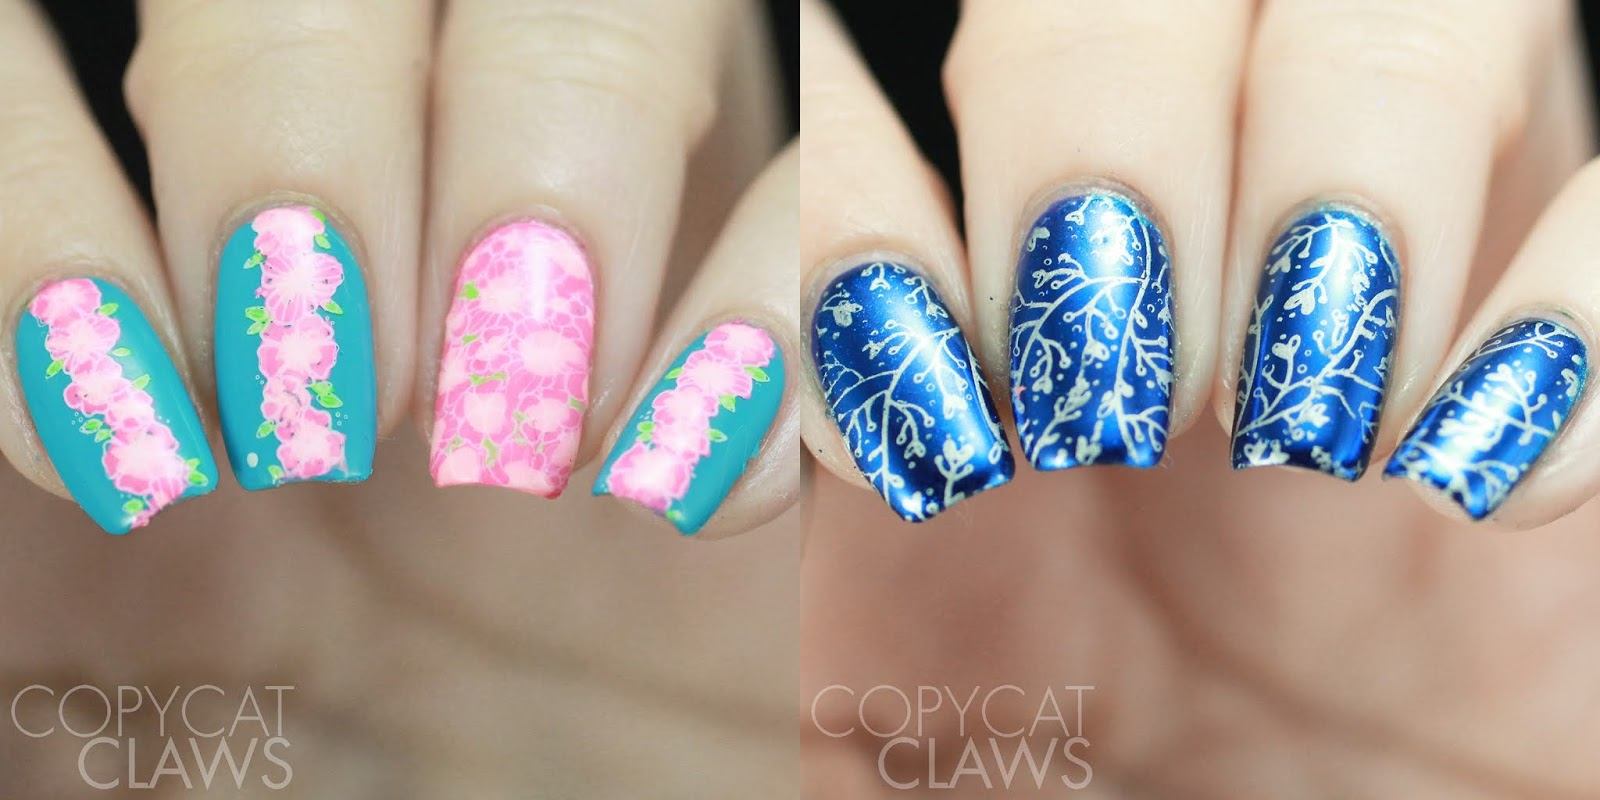 Copycat Claws Maniology Nails By Miri Bm Xl222 Stamping Plate Review